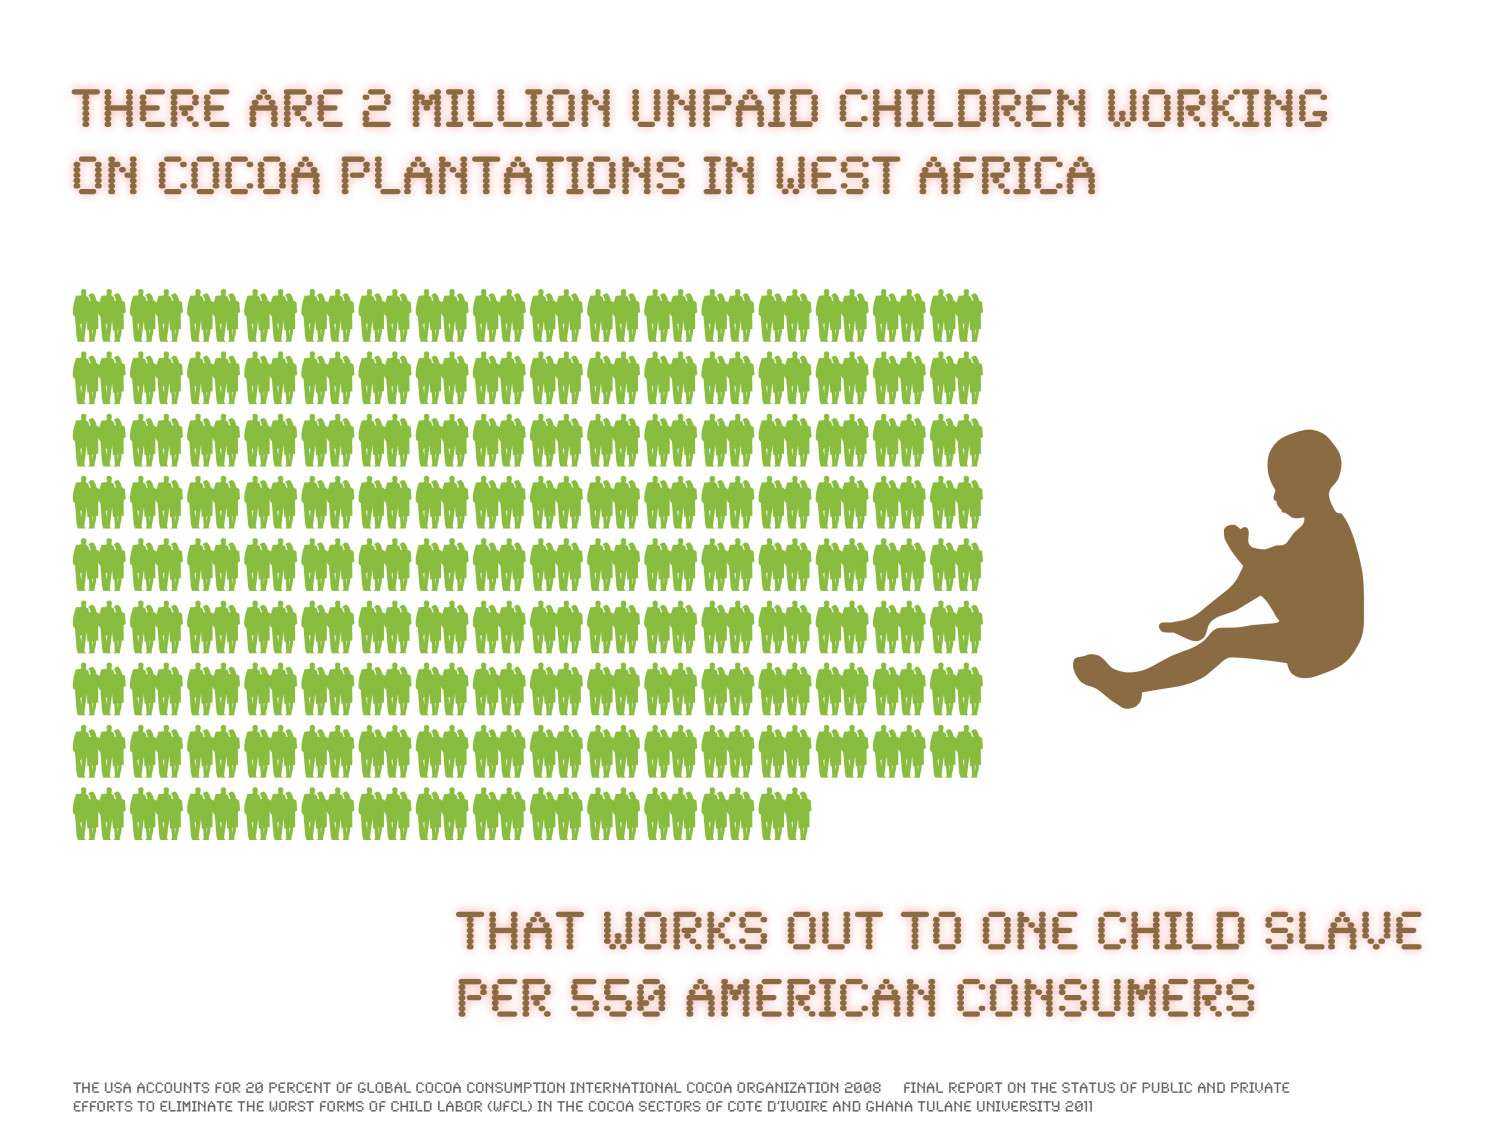 2 million child slaves on cocoa plantations in West Africa Infographic